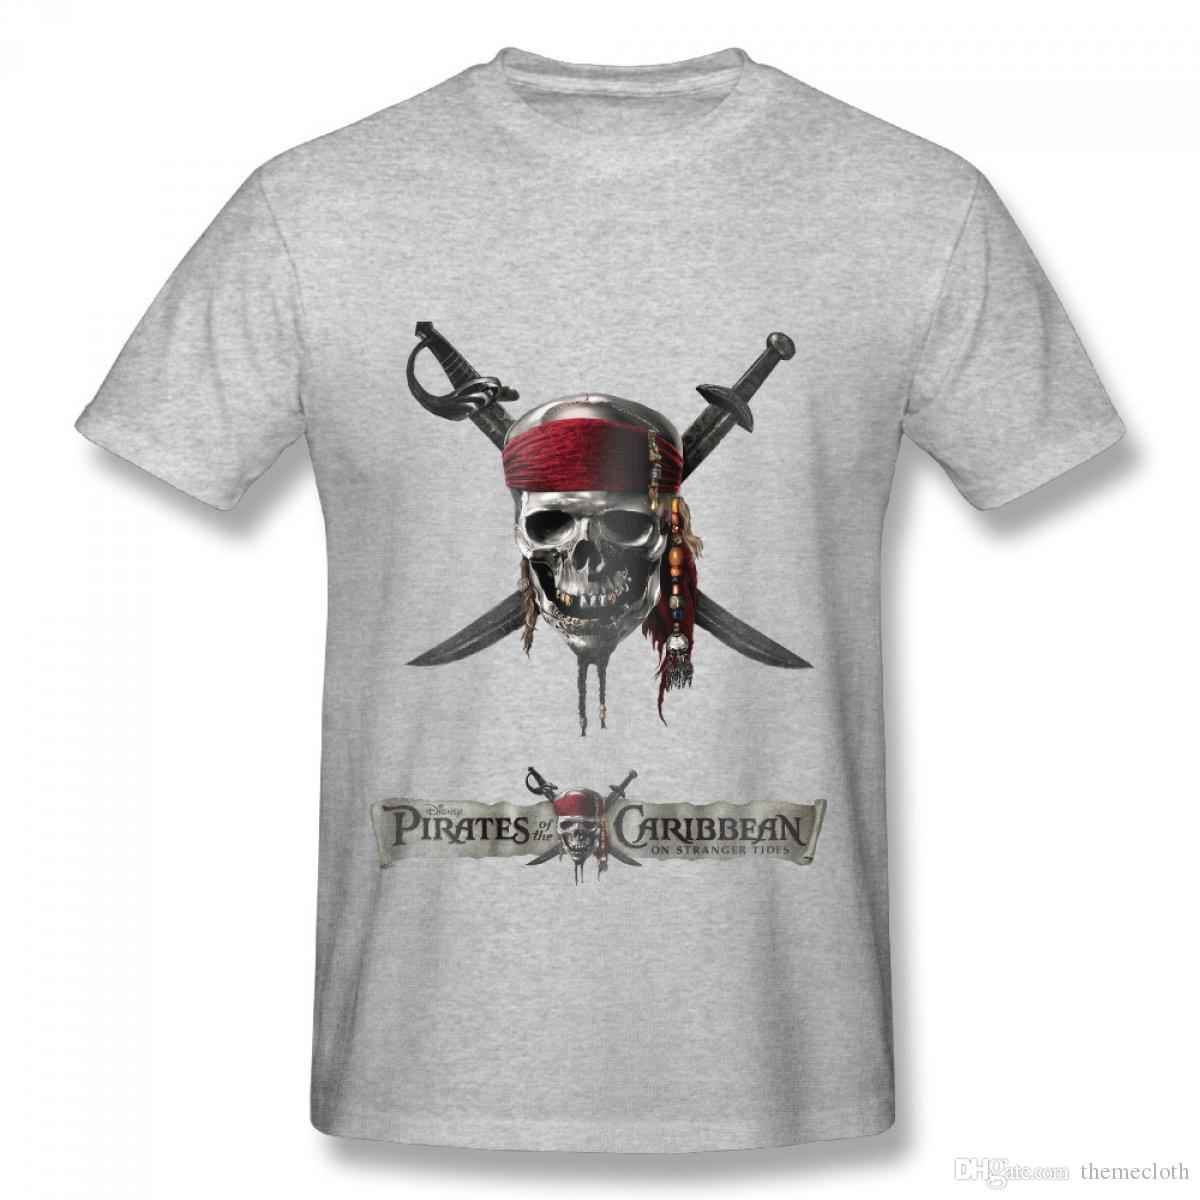 Pirates of the caribbean t shirt kamos t shirt for Custom t shirts under 5 dollars